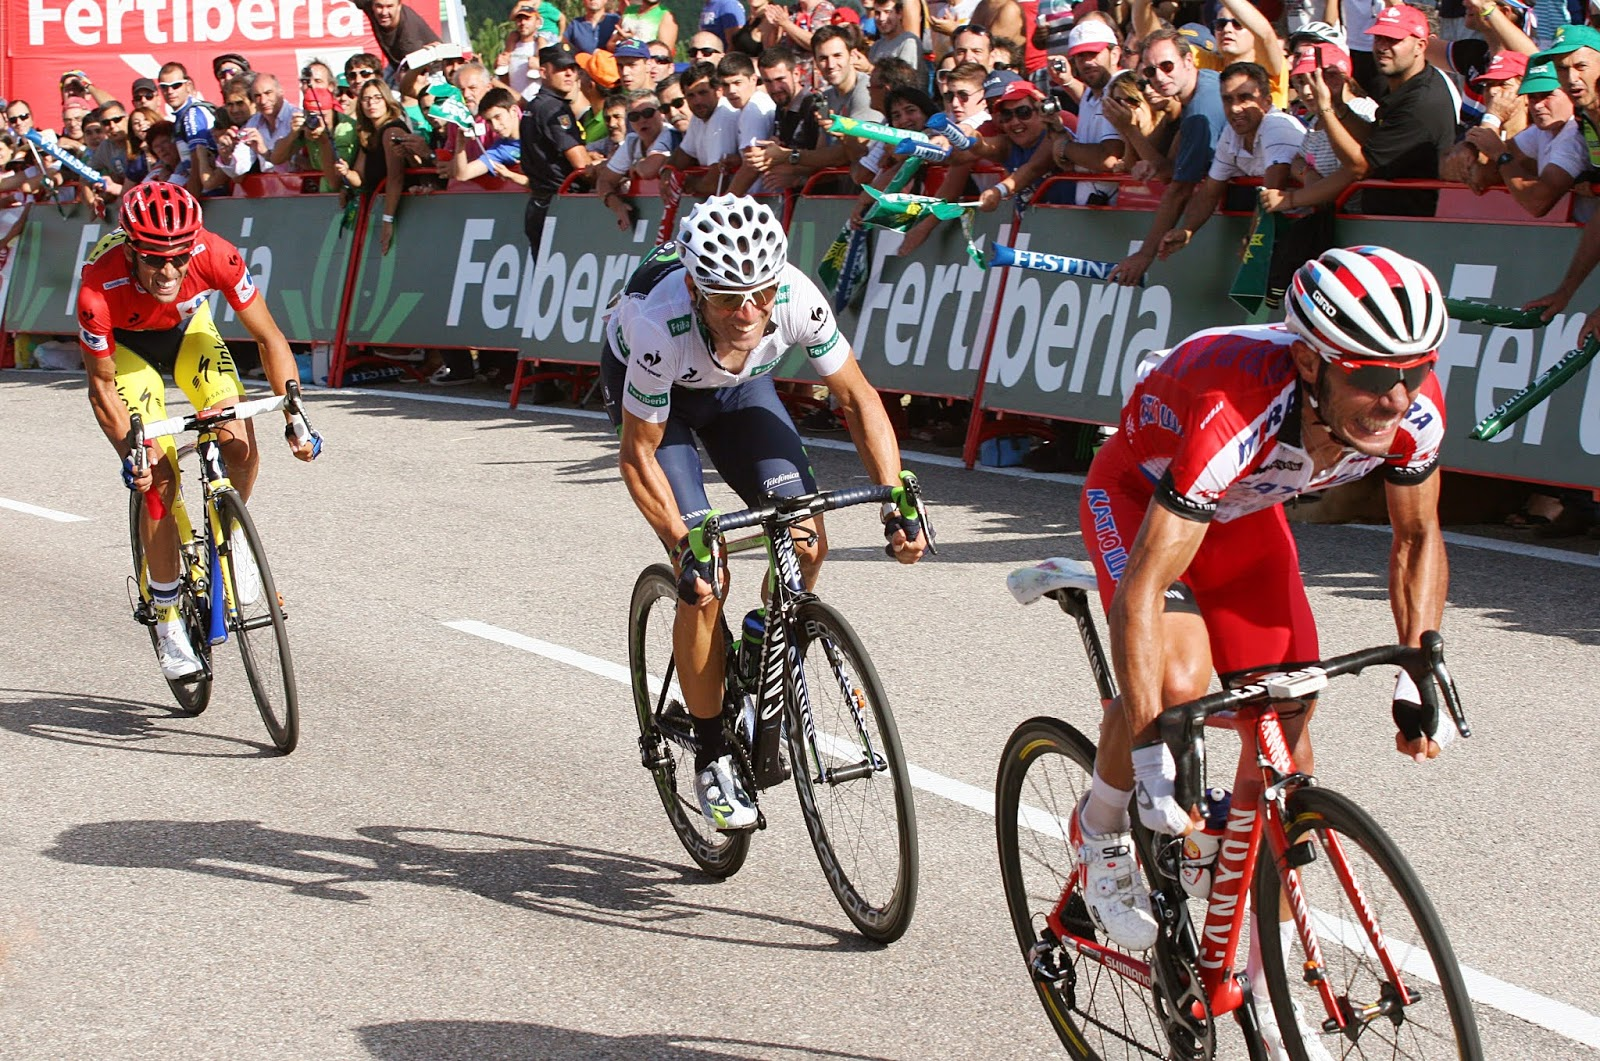 Best Spanish Cyclists of All Time, Contador, Valverde, Purito